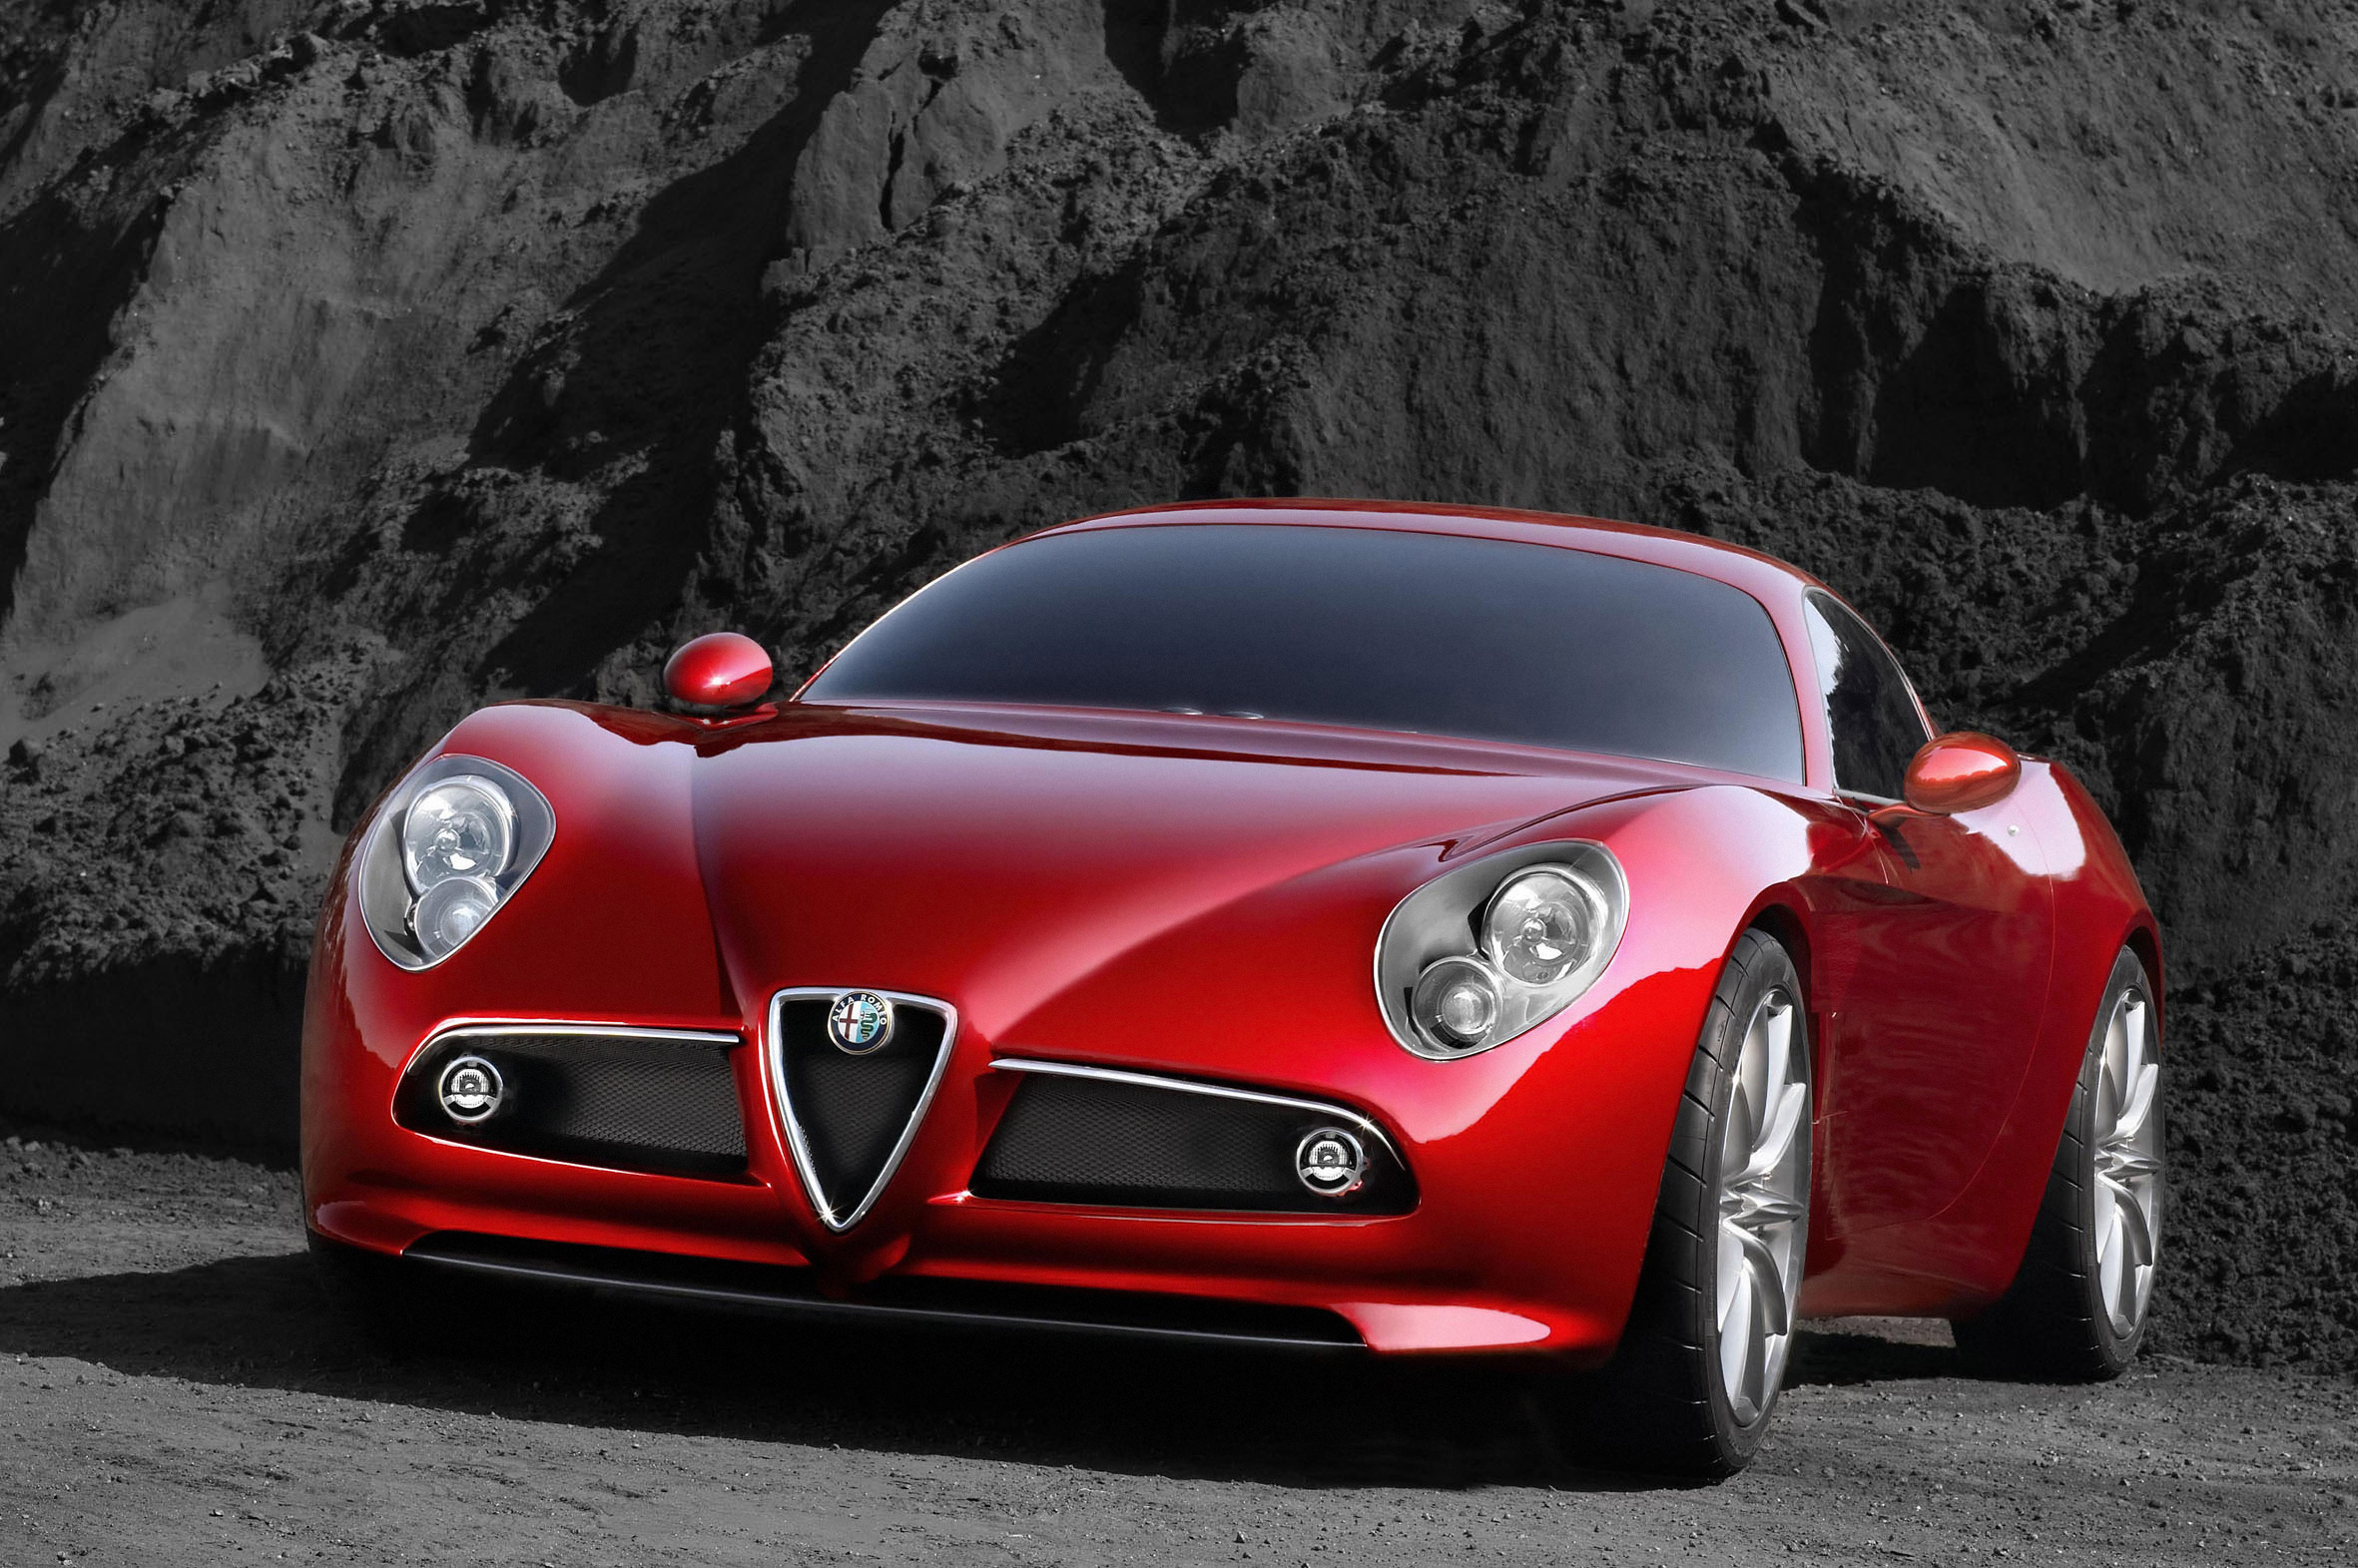 """The name contains several glorious historical references: 8C is the abbreviation that identified the winning eight-cylinder in-line cars designed by Vittorio Jano which, since the 1930s, had triumphed in the Mille Miglia and four times in succession at Le Mans, while the wording """"Competizione"""" recalls the 6C 2500 Competizione with which JM Fangio and Consalvo Sanesi disputed the Mille Miglia"""